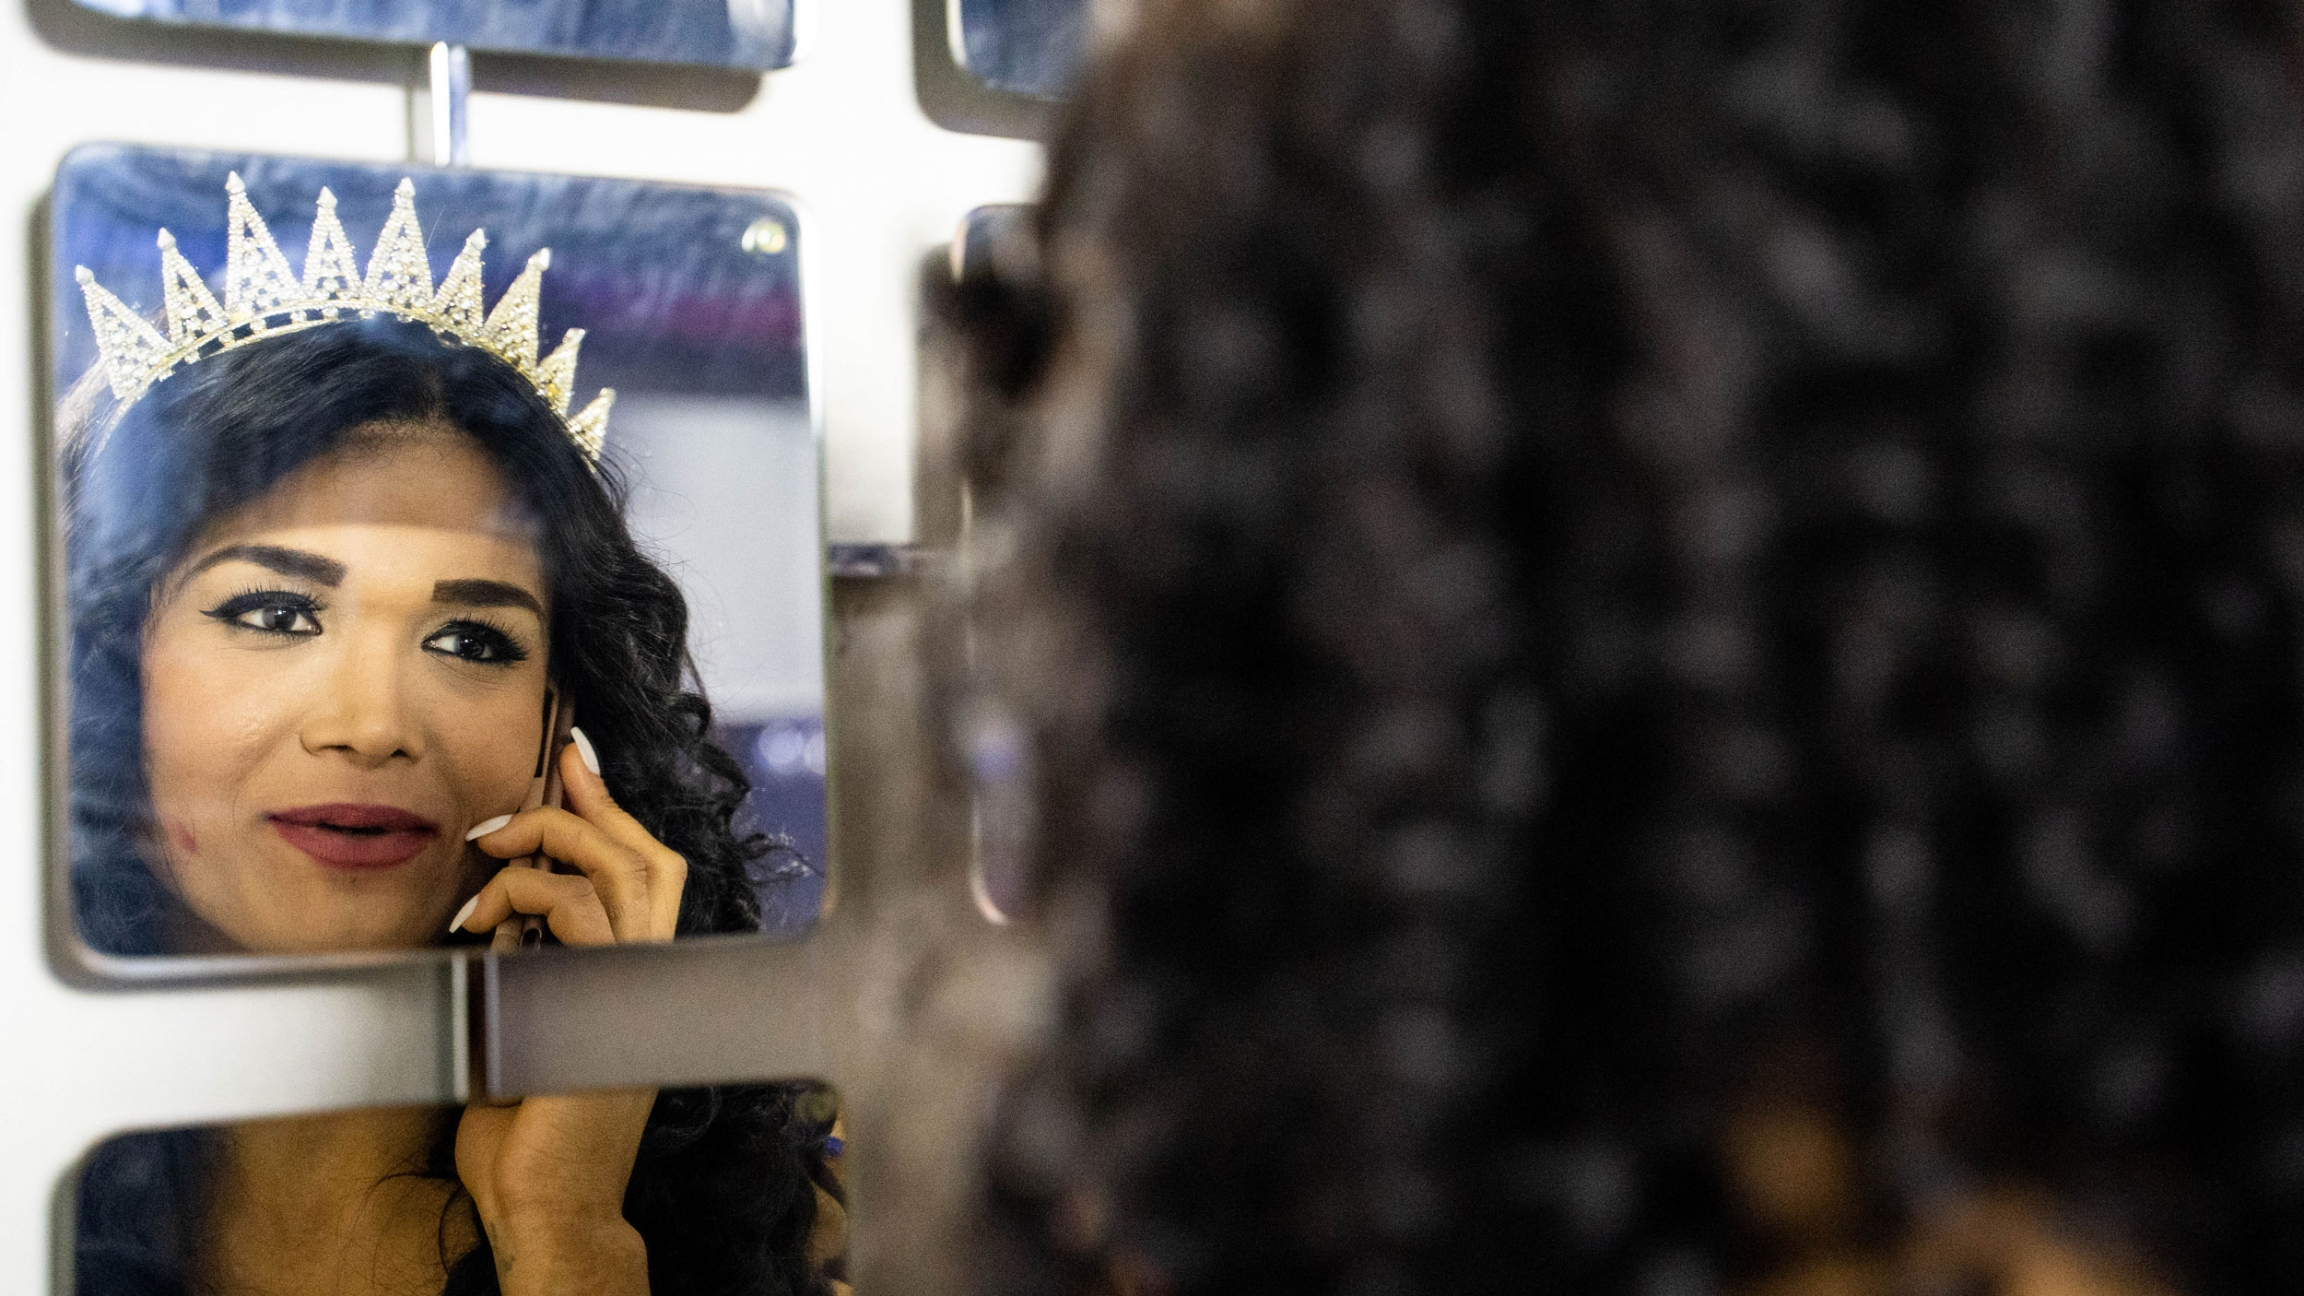 A transgender woman is shown in the reflection of a mirror holding a phone to her hear and wearing a crown.